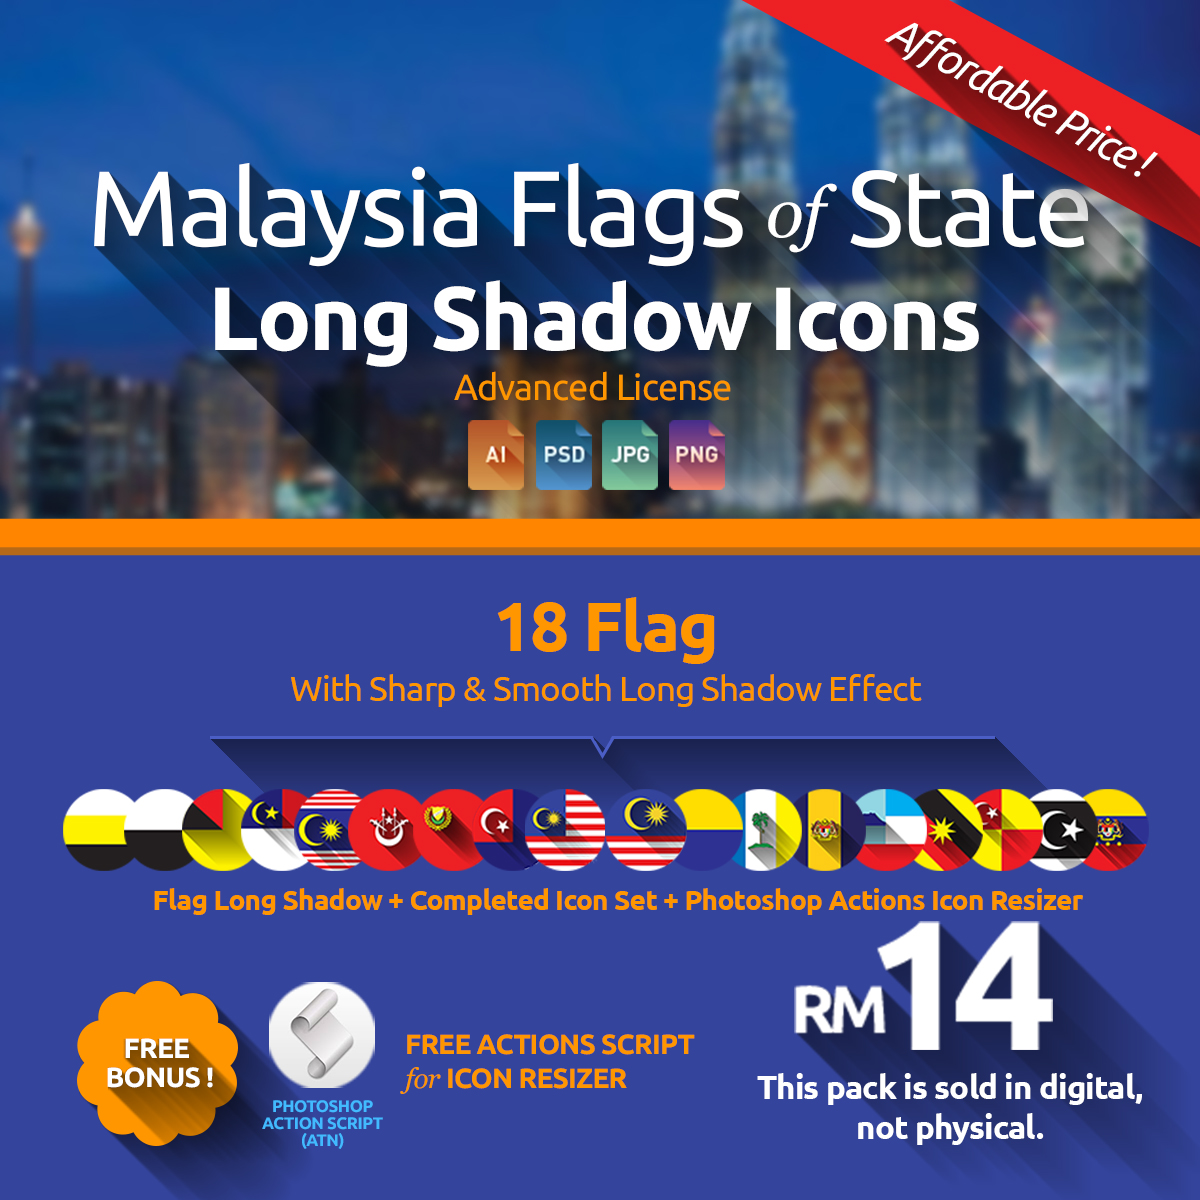 Malaysia Flags Long Shadow Icons - Zestladesign V3